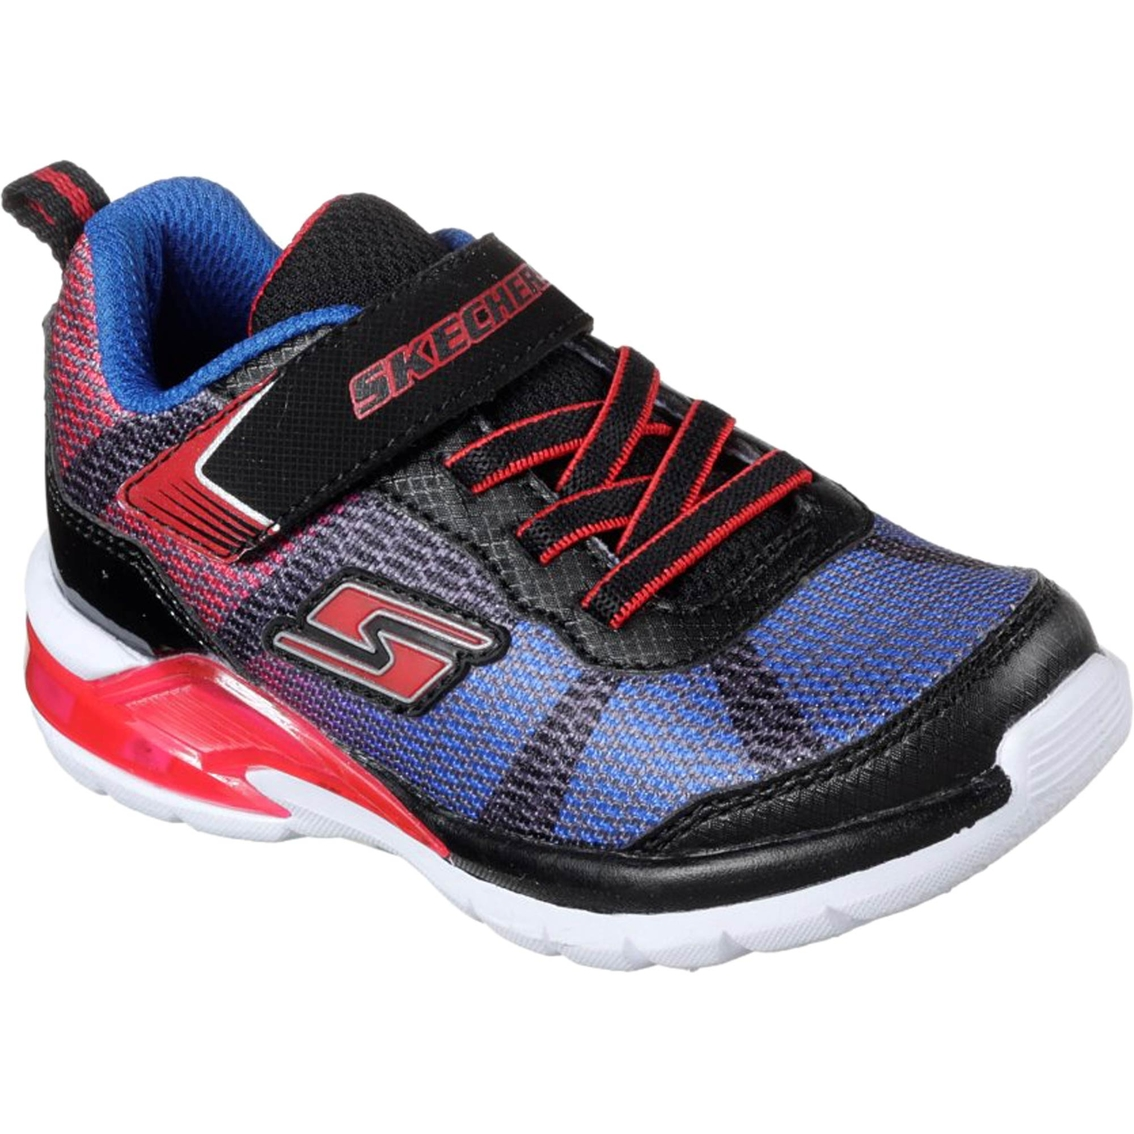 2378a23b849d0 Skechers Toddler Boys Erupters Ii Lava Wave Light Up Sneakers ...